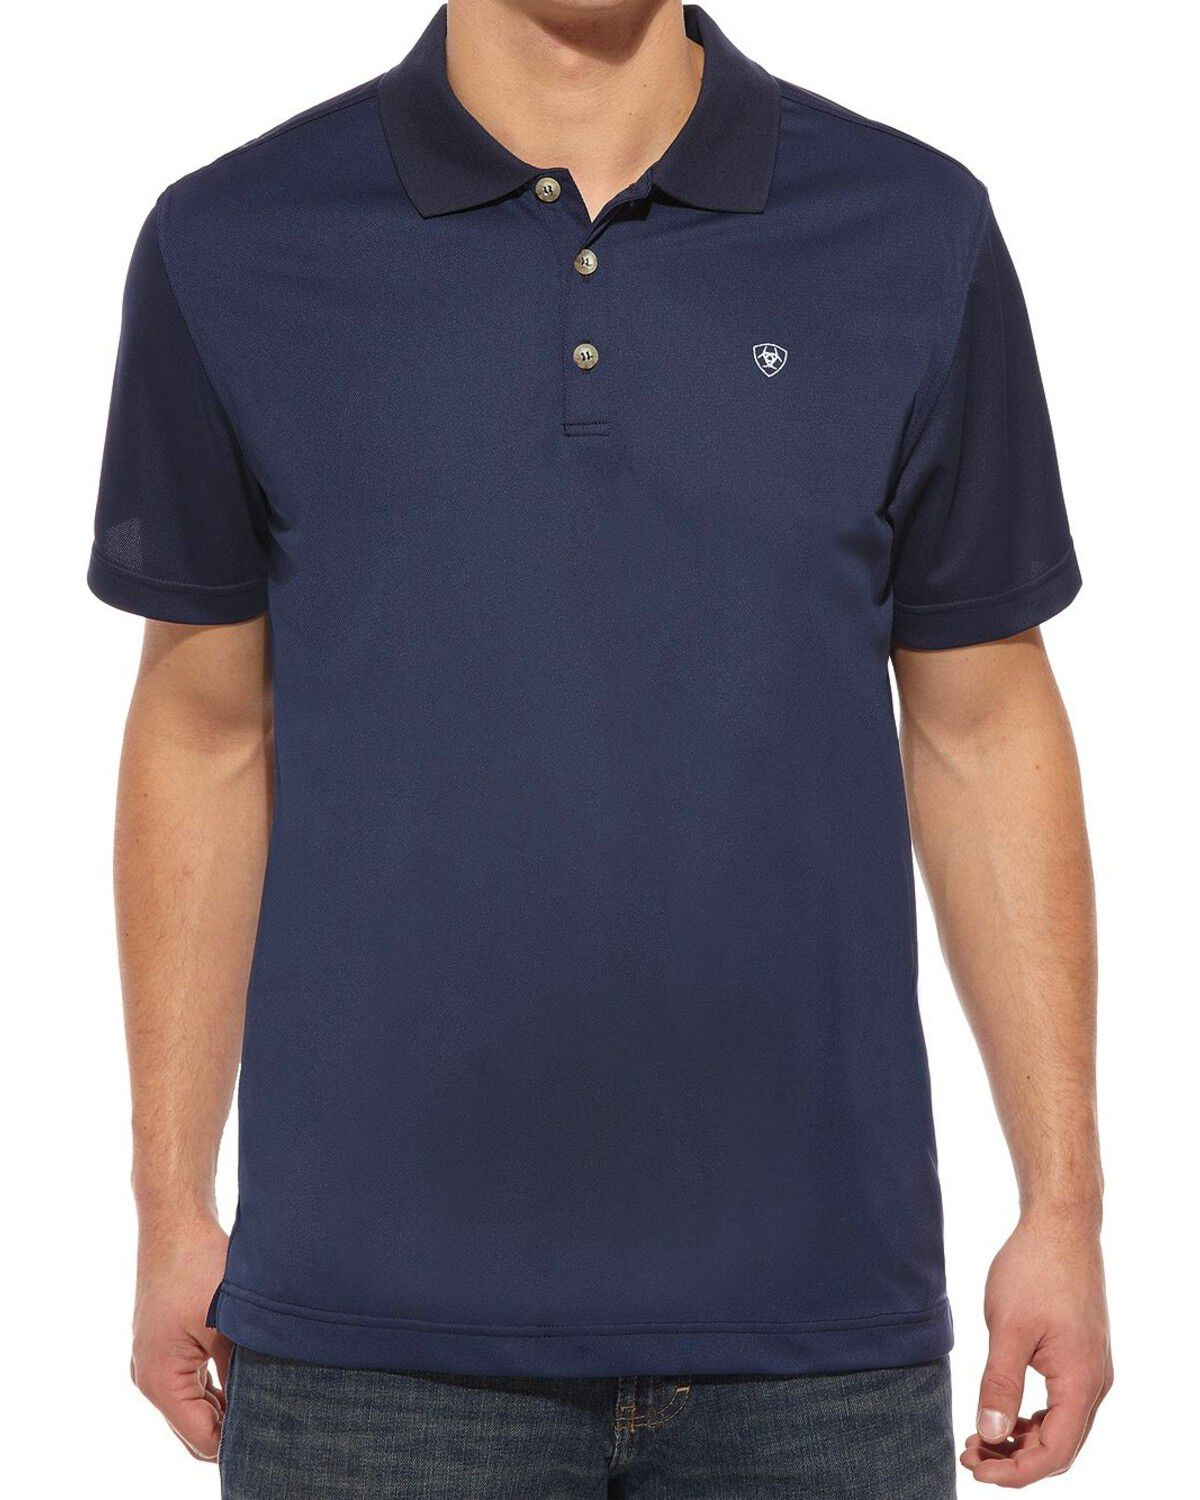 ARIAT Mens Hive Tek Stretch Polo Shirt